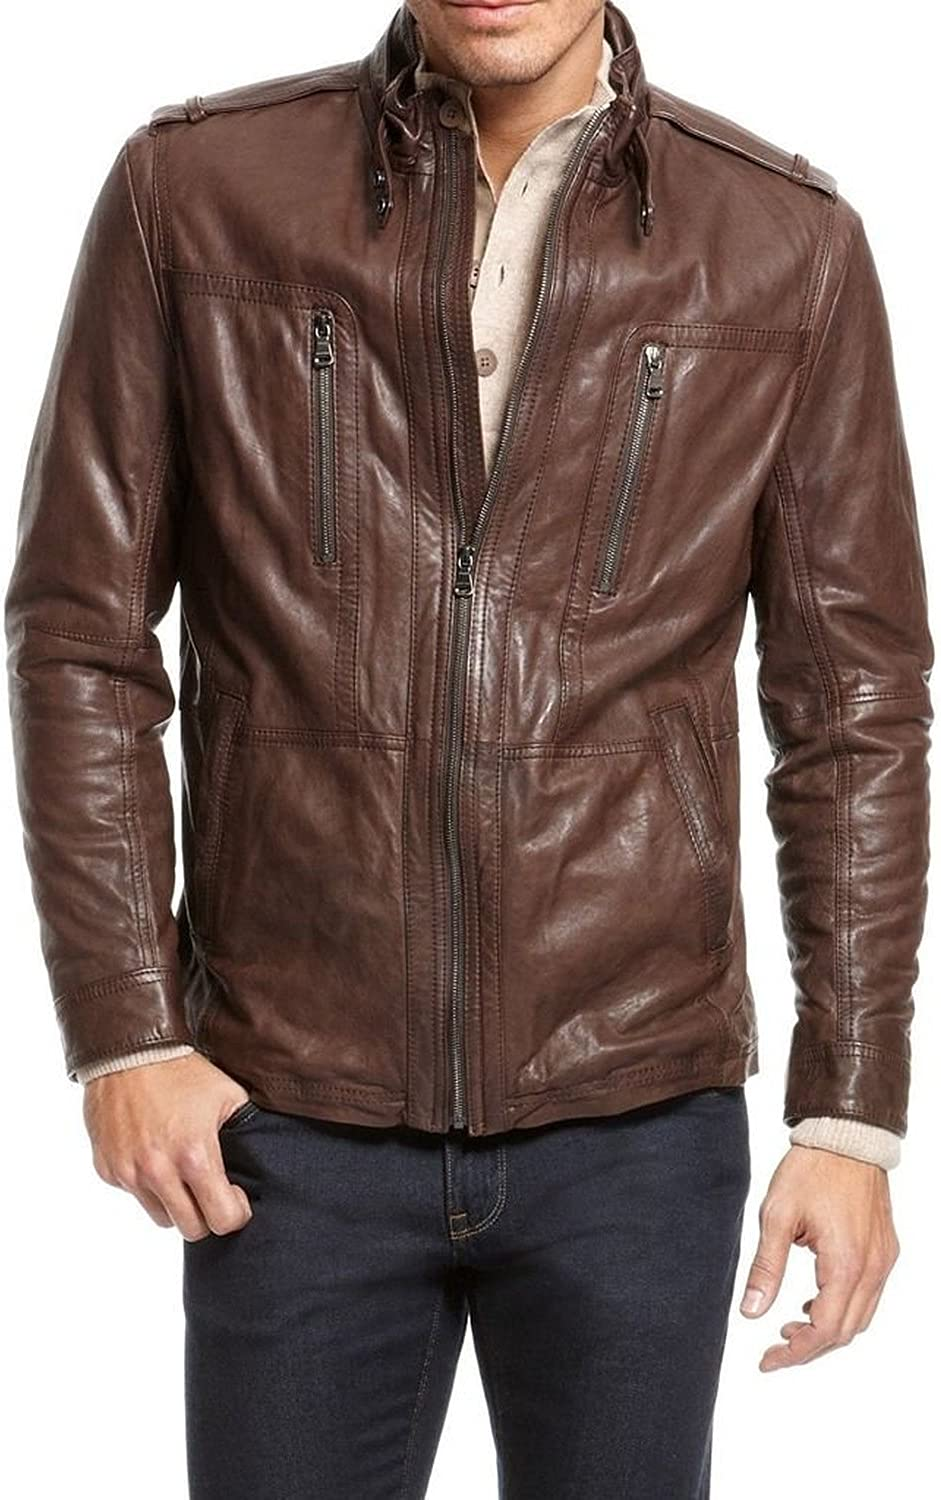 New Men Quilted Leather Jacket Soft Lambskin Biker Bomber T807